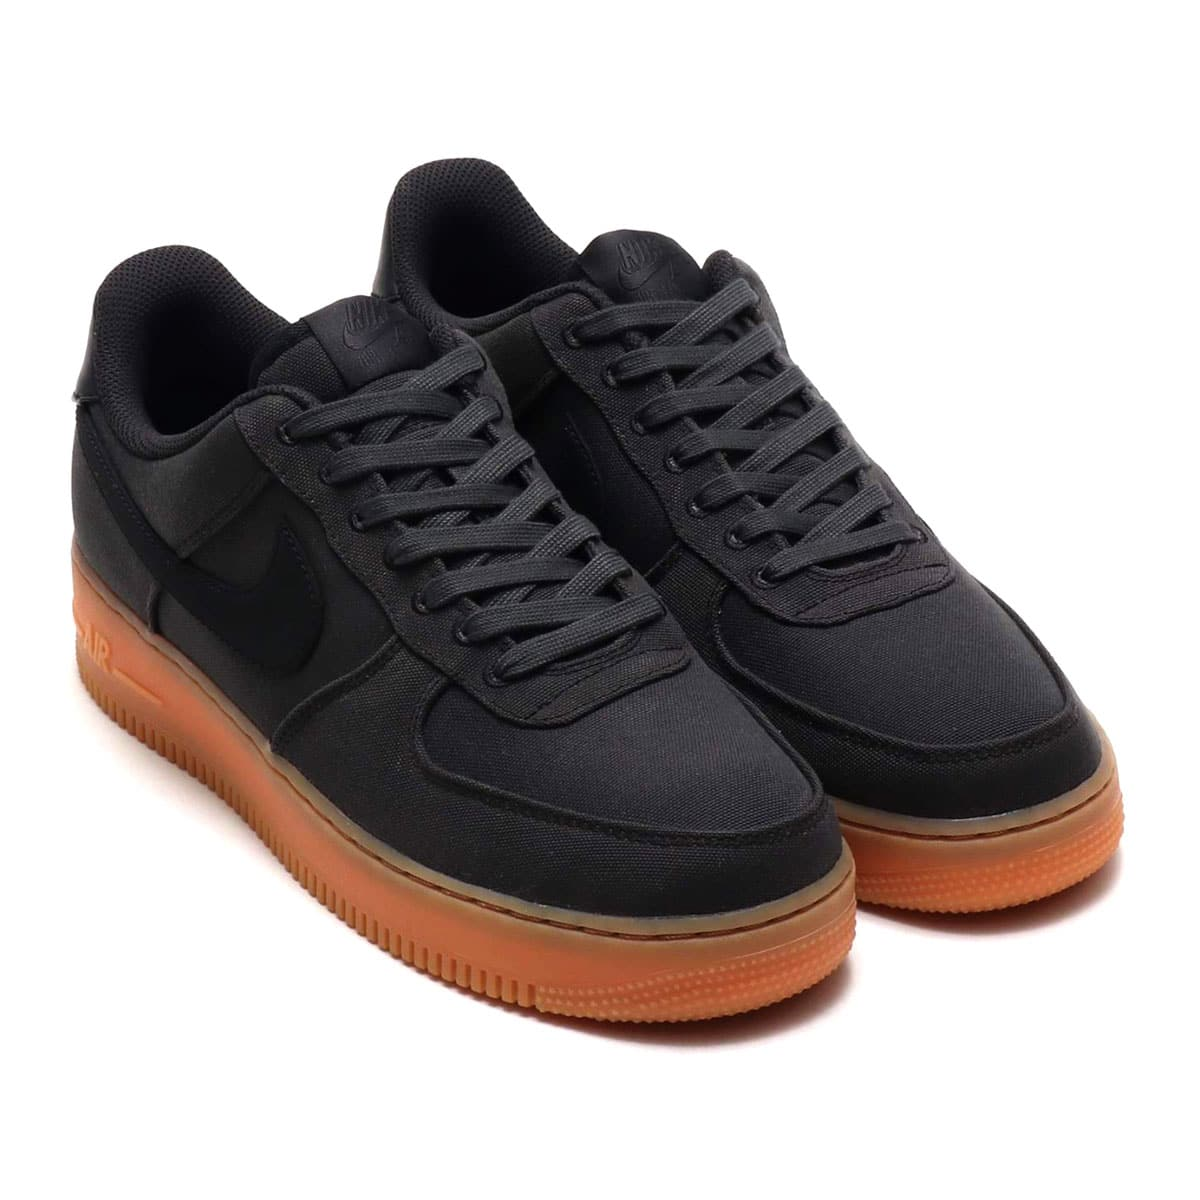 NIKE AIR FORCE 1 '07 LV8 STYLE  BLACK/BLACK-GUM MED BROWN 18HO-I_photo_large